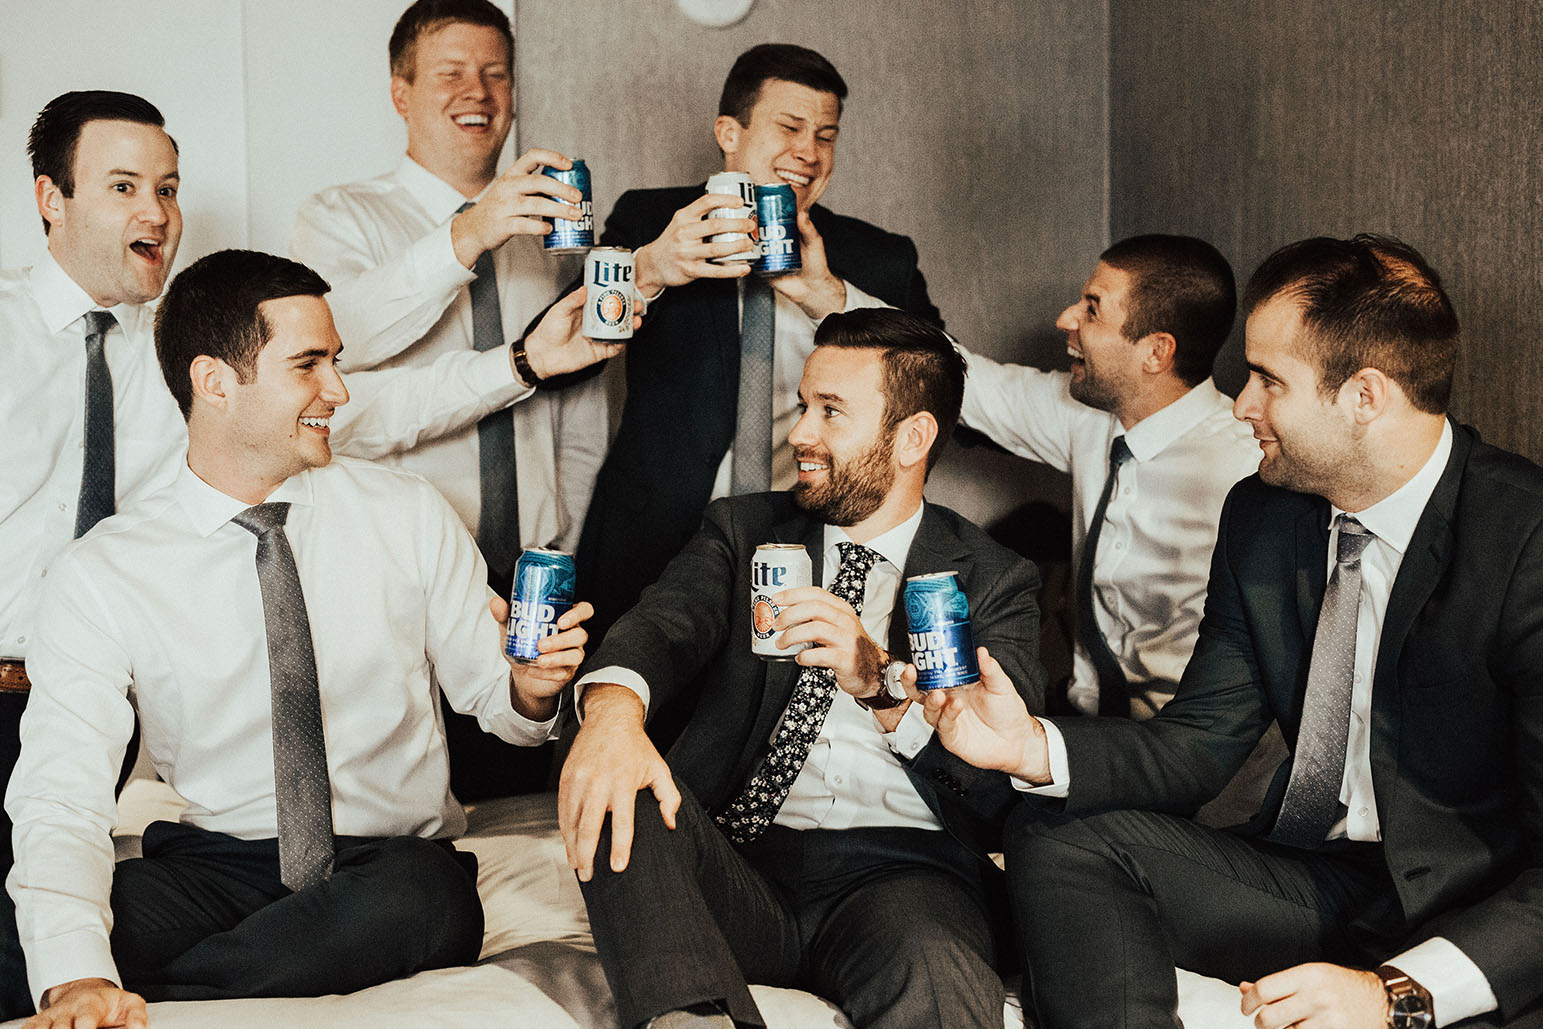 Russ Drinking with Groomsmen